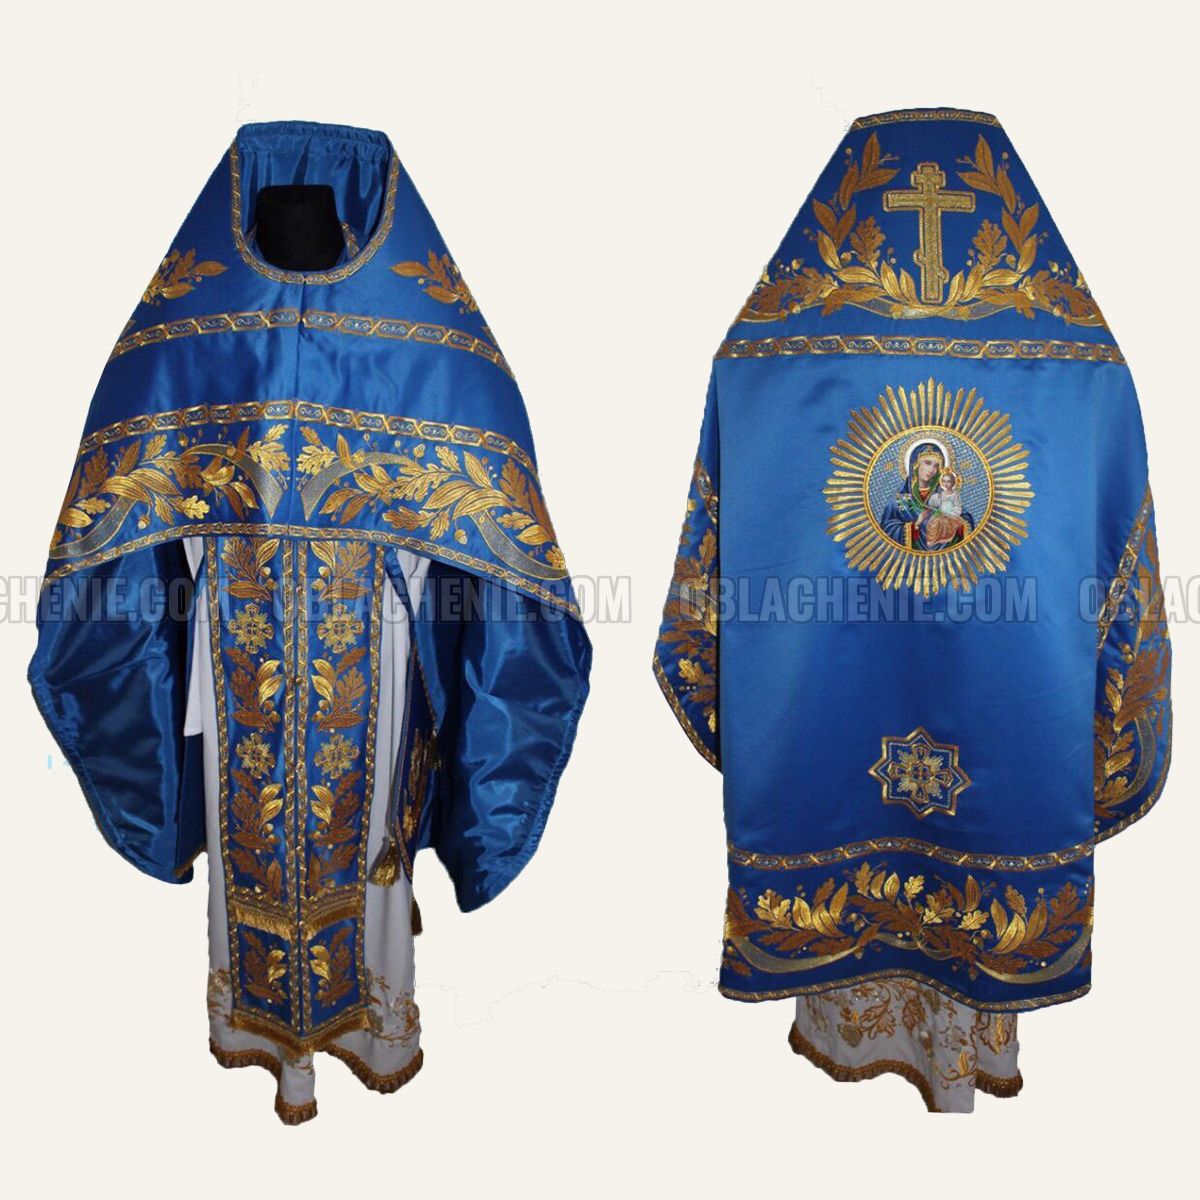 Embroidered priest's vestments 10204